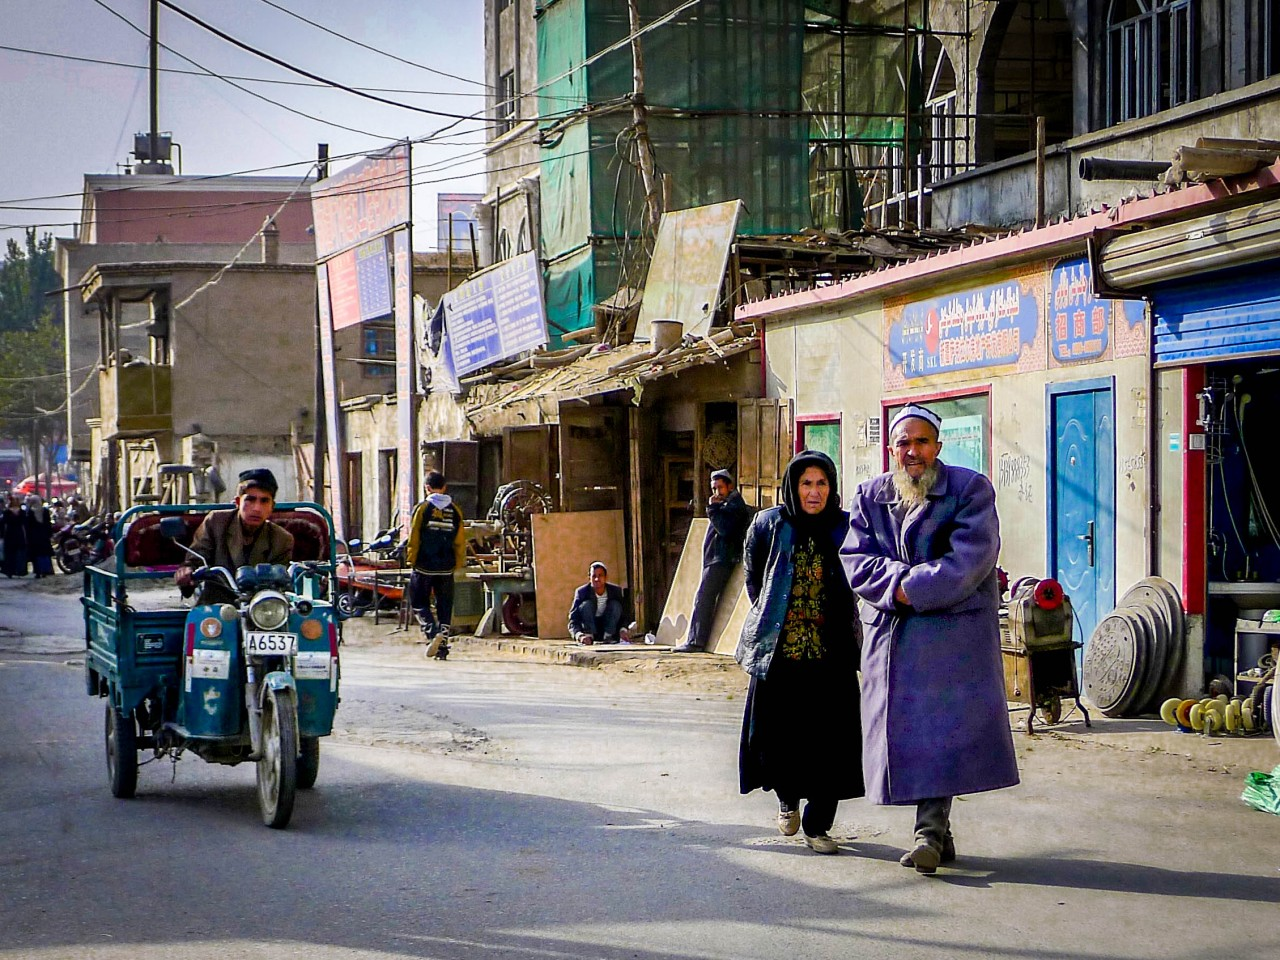 Westerners find it hard to believe Chinese media reports on the situation in Xinjiang. (iStock)